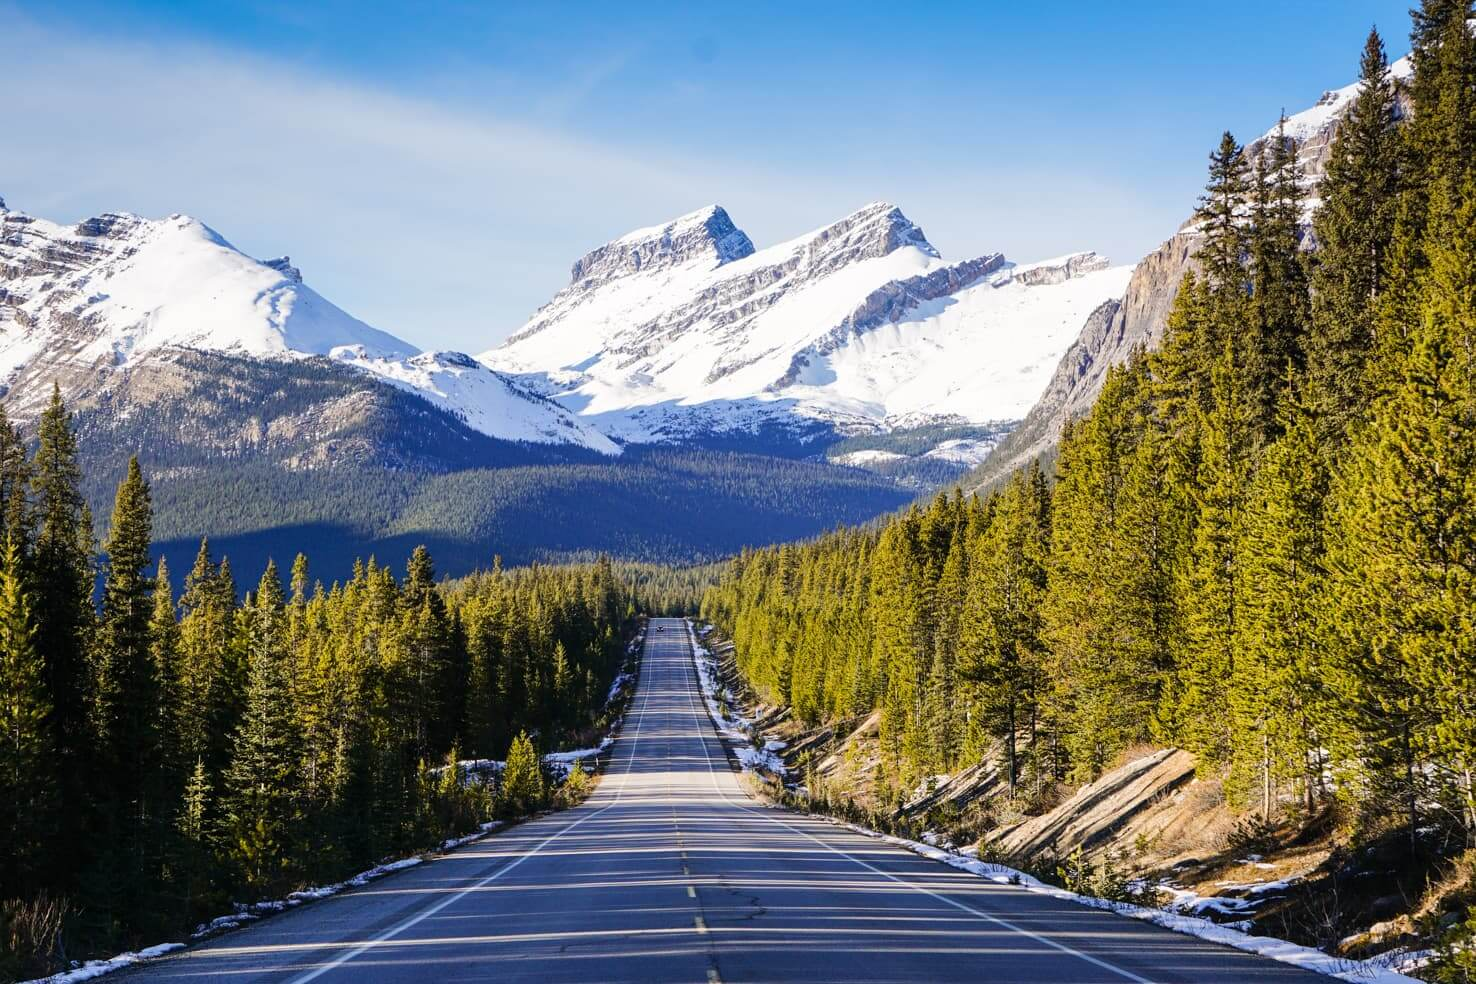 Things to do in Jasper National Park - 2 Drive the scenic Icefields Parkway